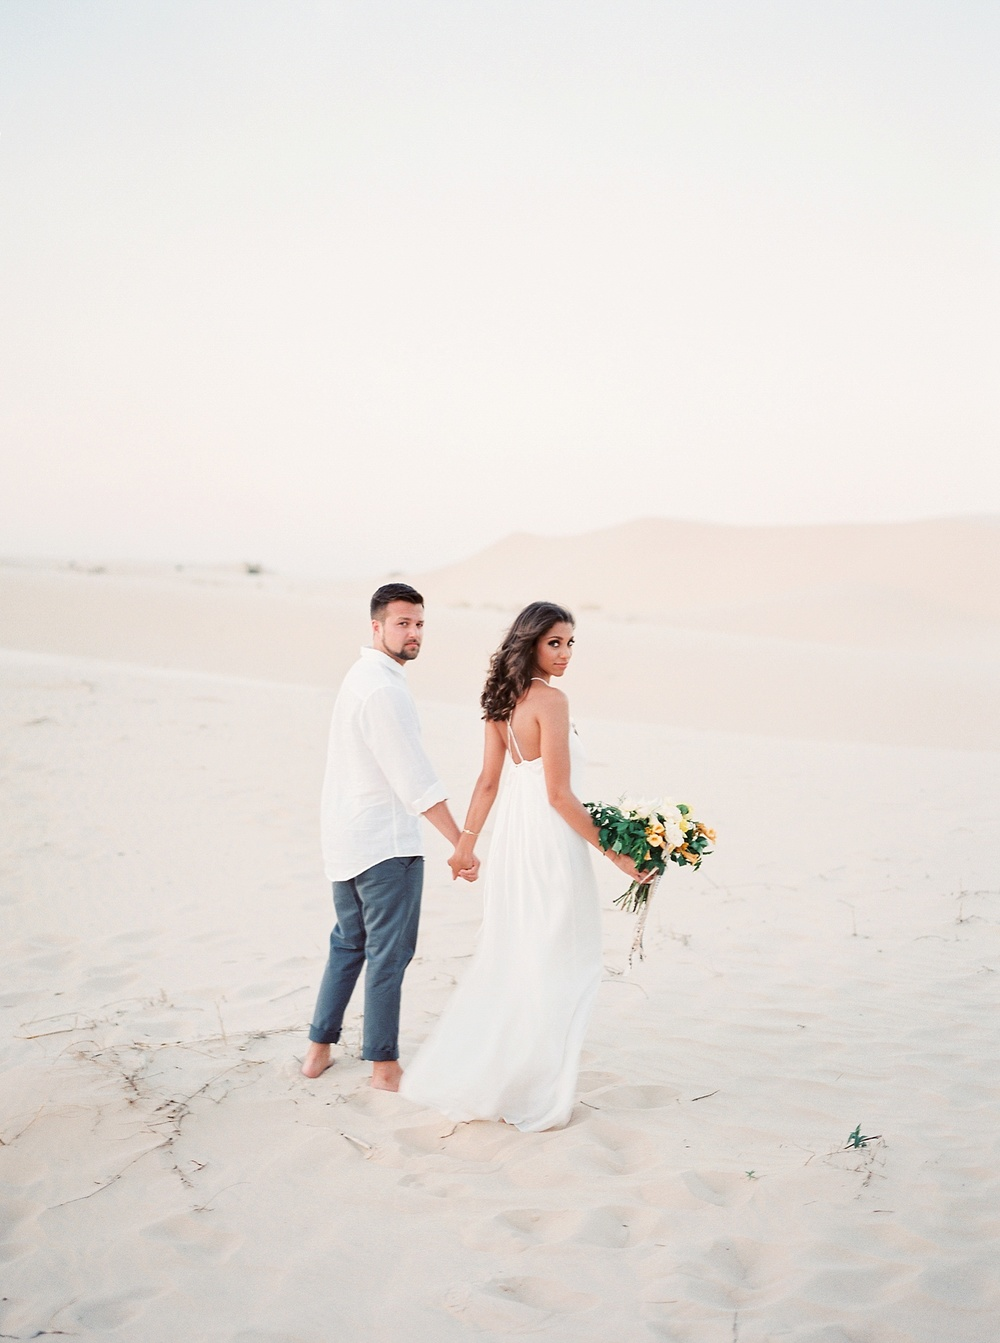 MOROCCAN ELOPEMENT INSPIRATION